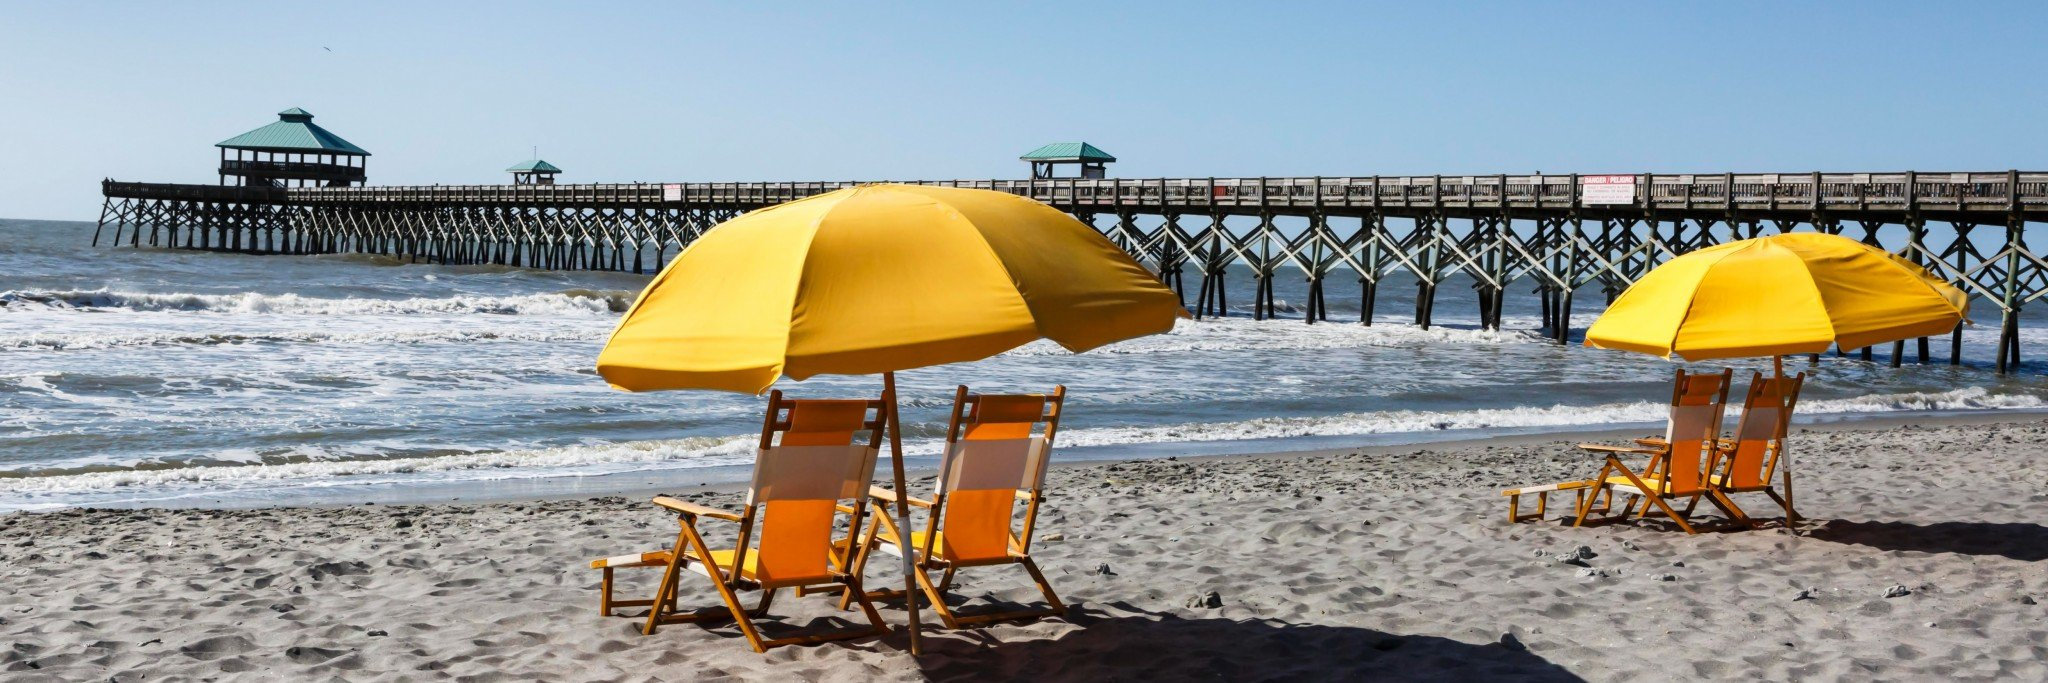 folly beach pier with yellow umbrella